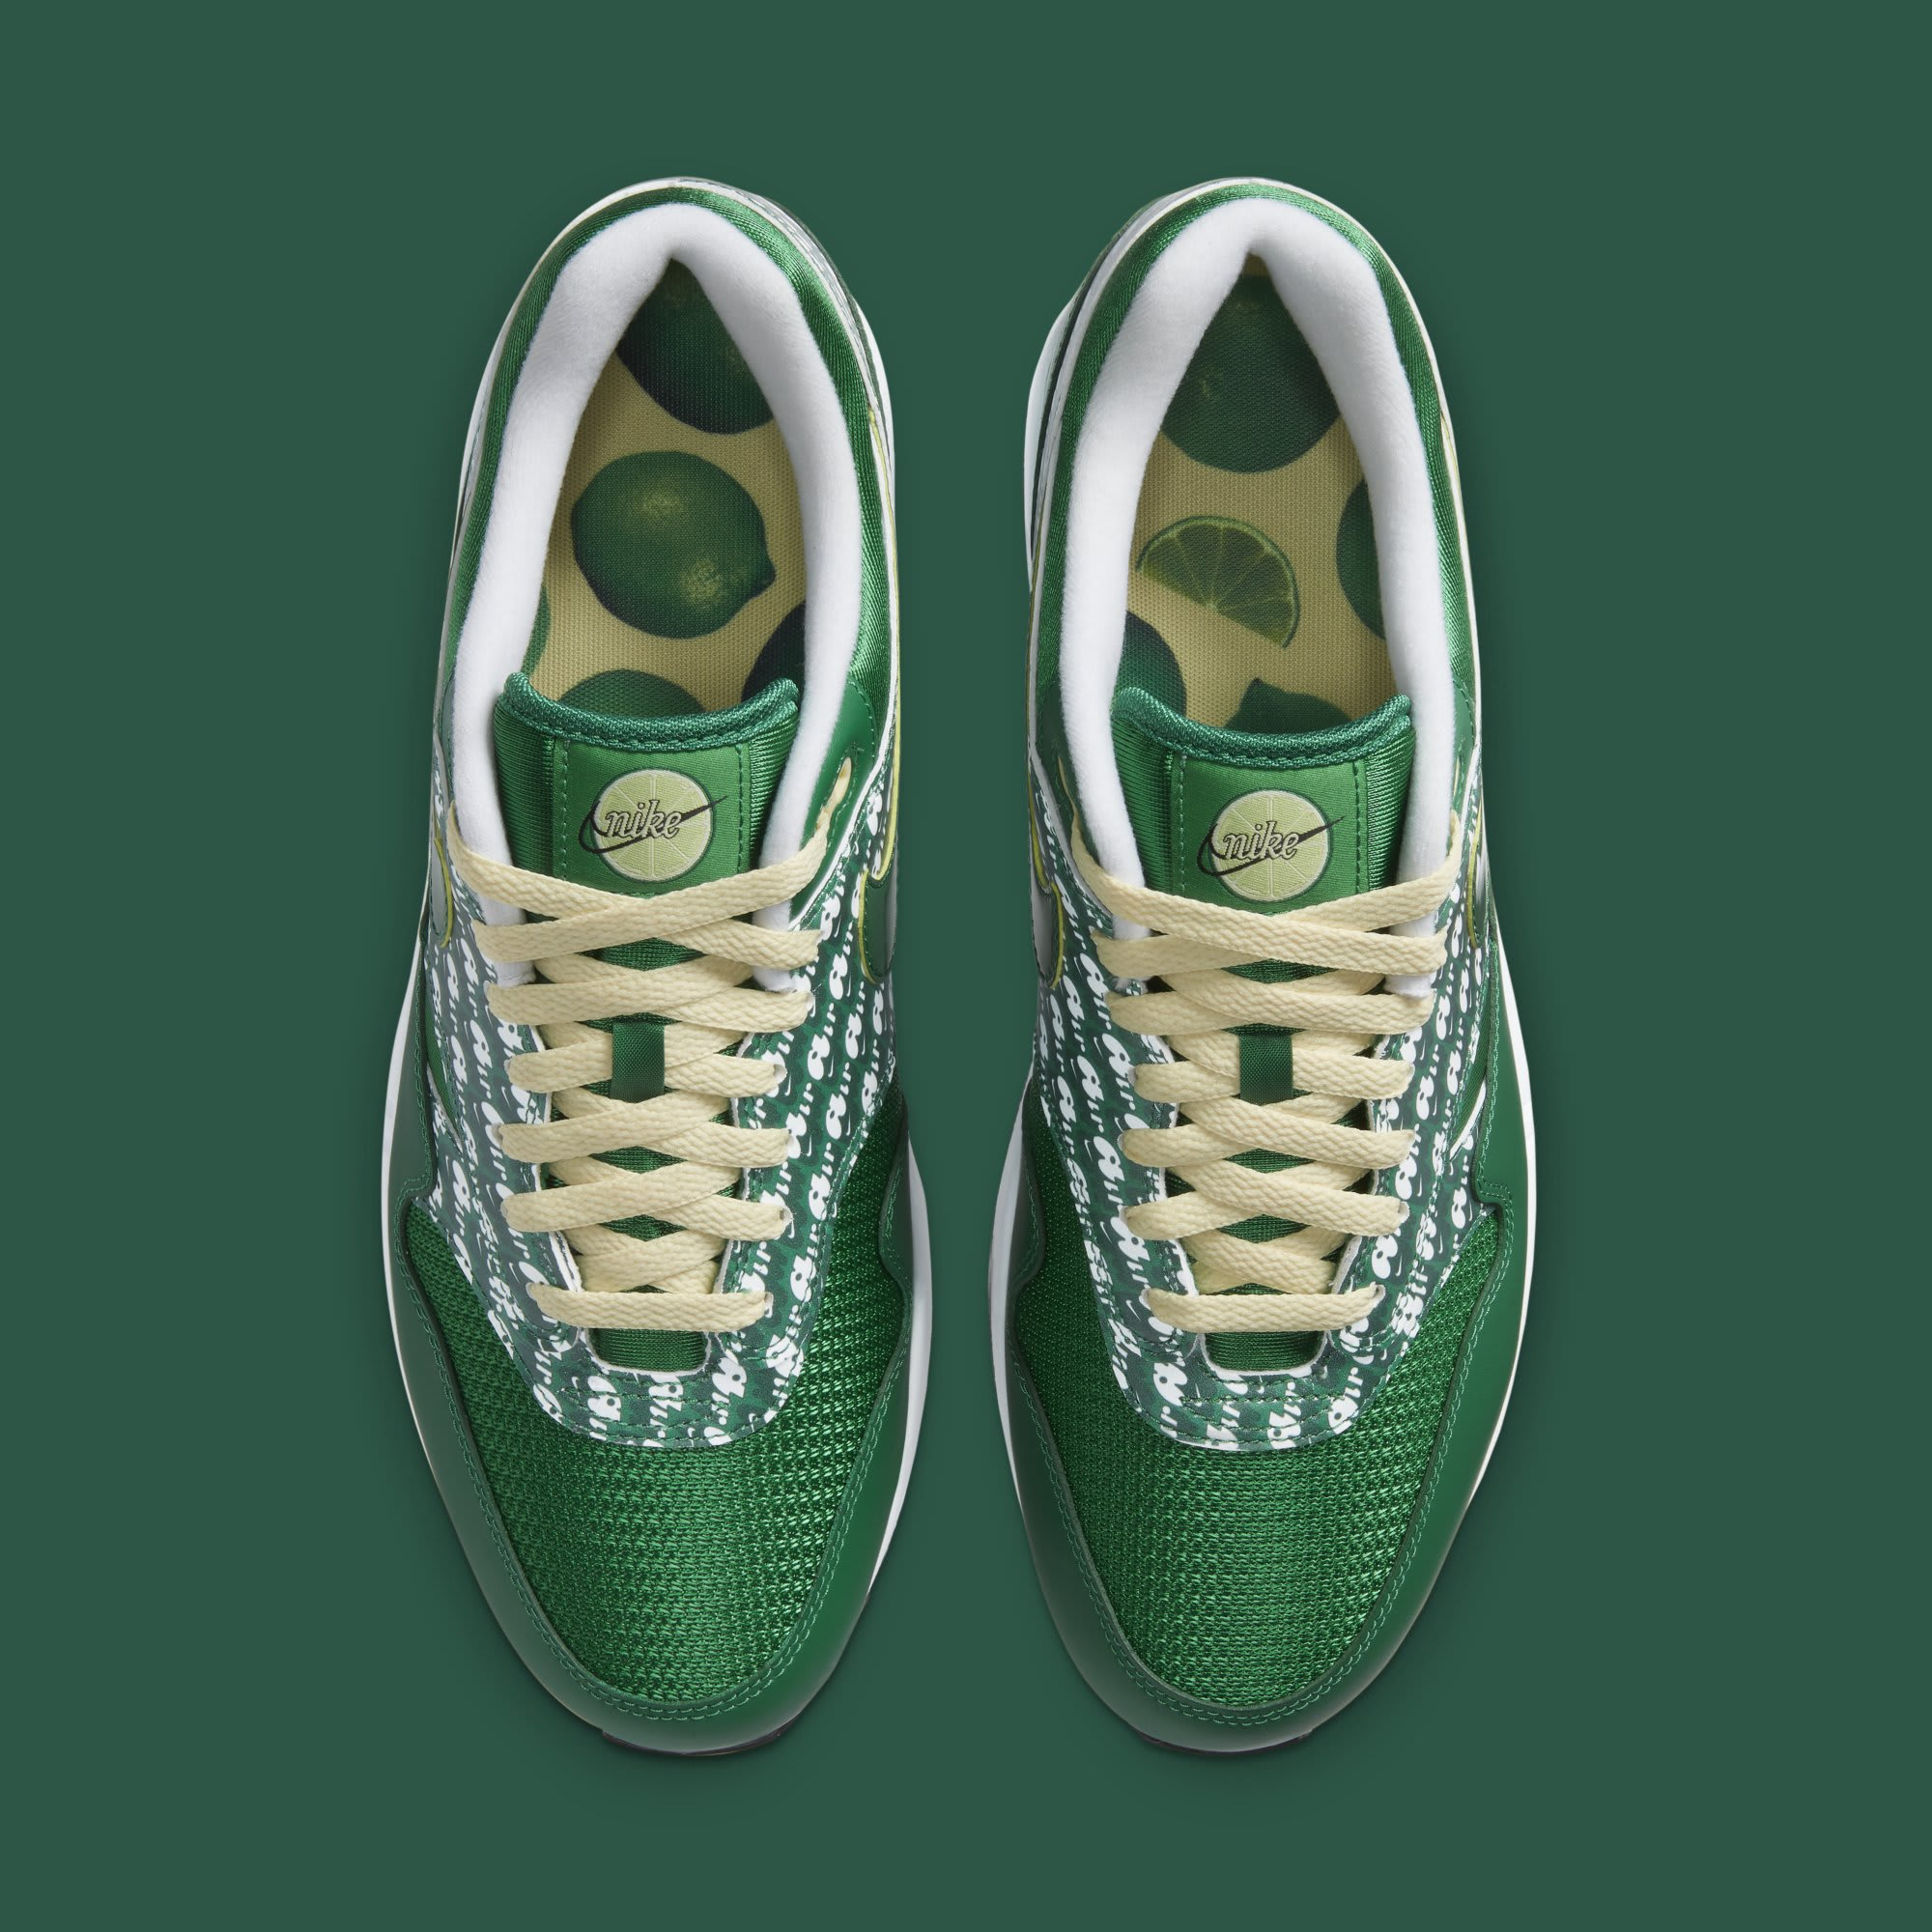 Nike Air Max 1 Premium 'Pine Green' CJ0609-300 Top